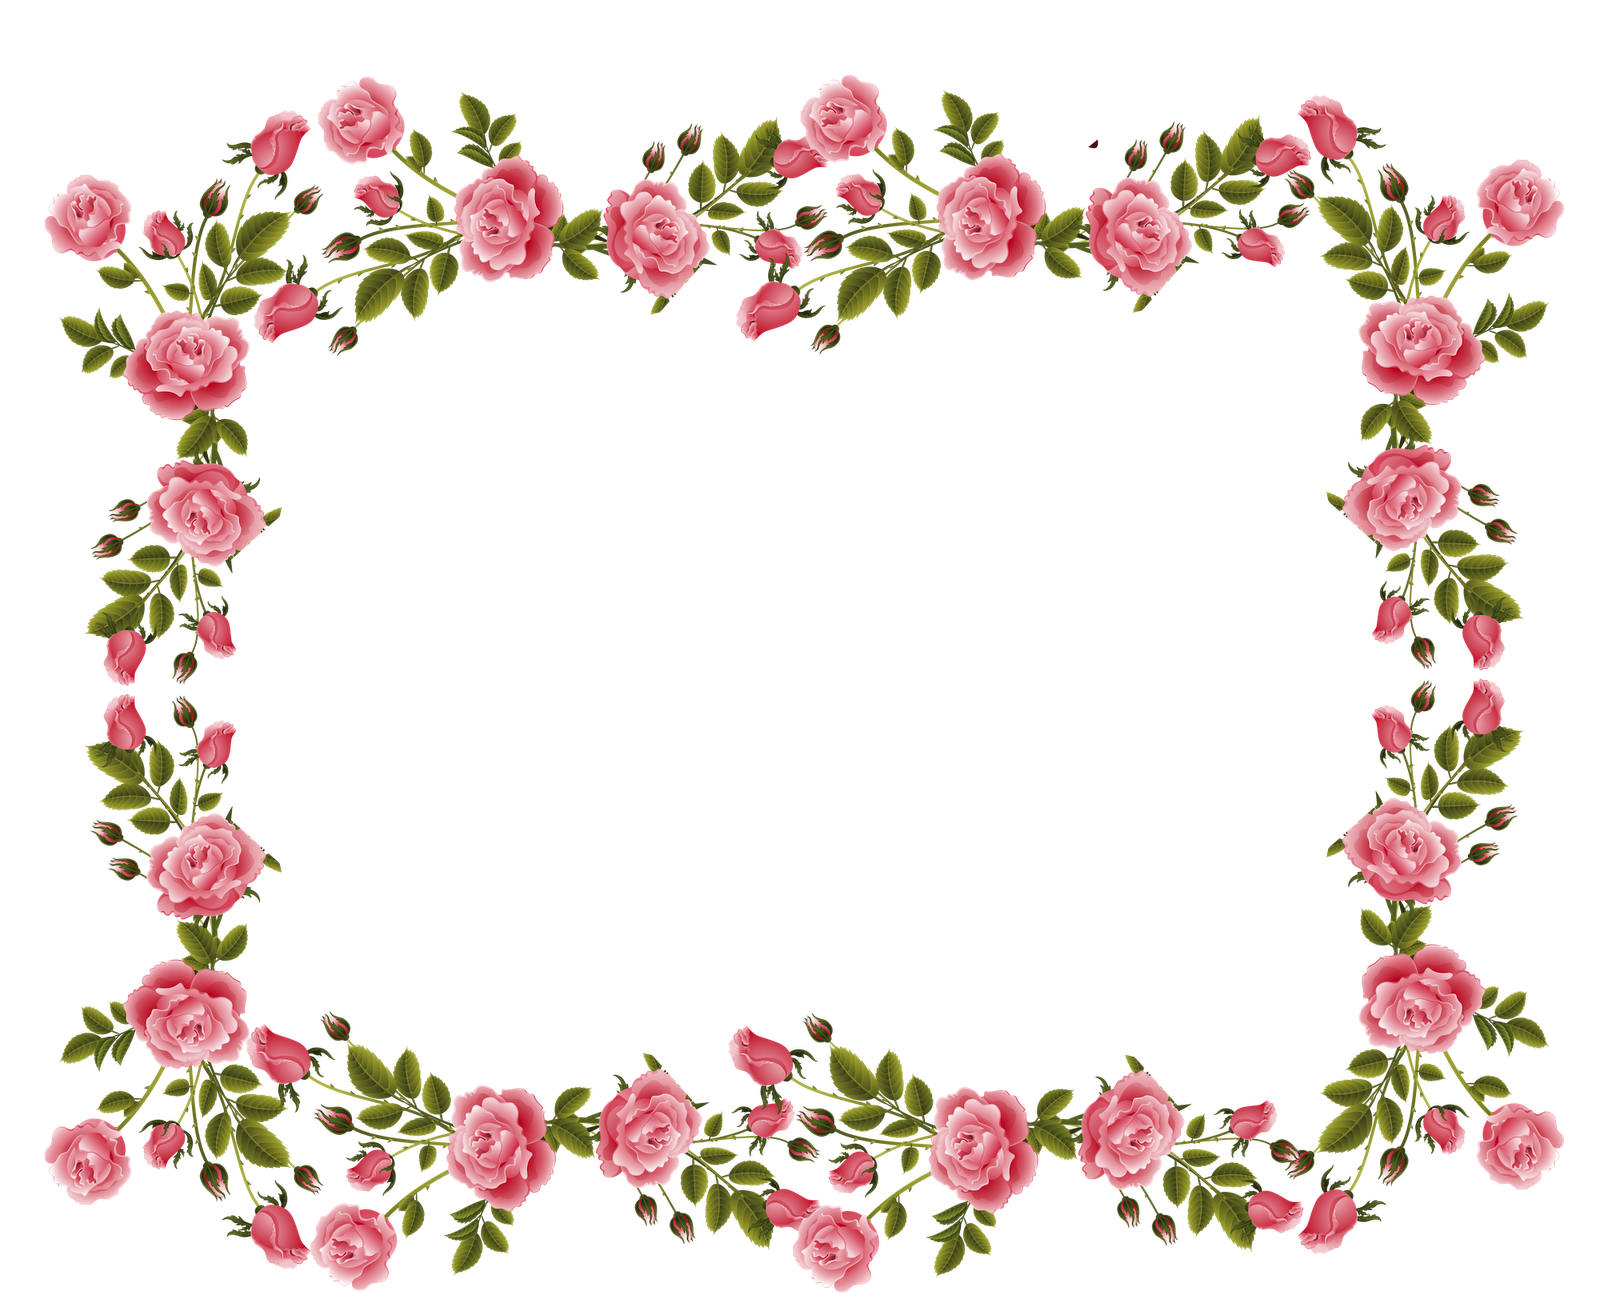 Pin By Israr Husain On Marcos Flower Border Png Flower Border Rose Frame